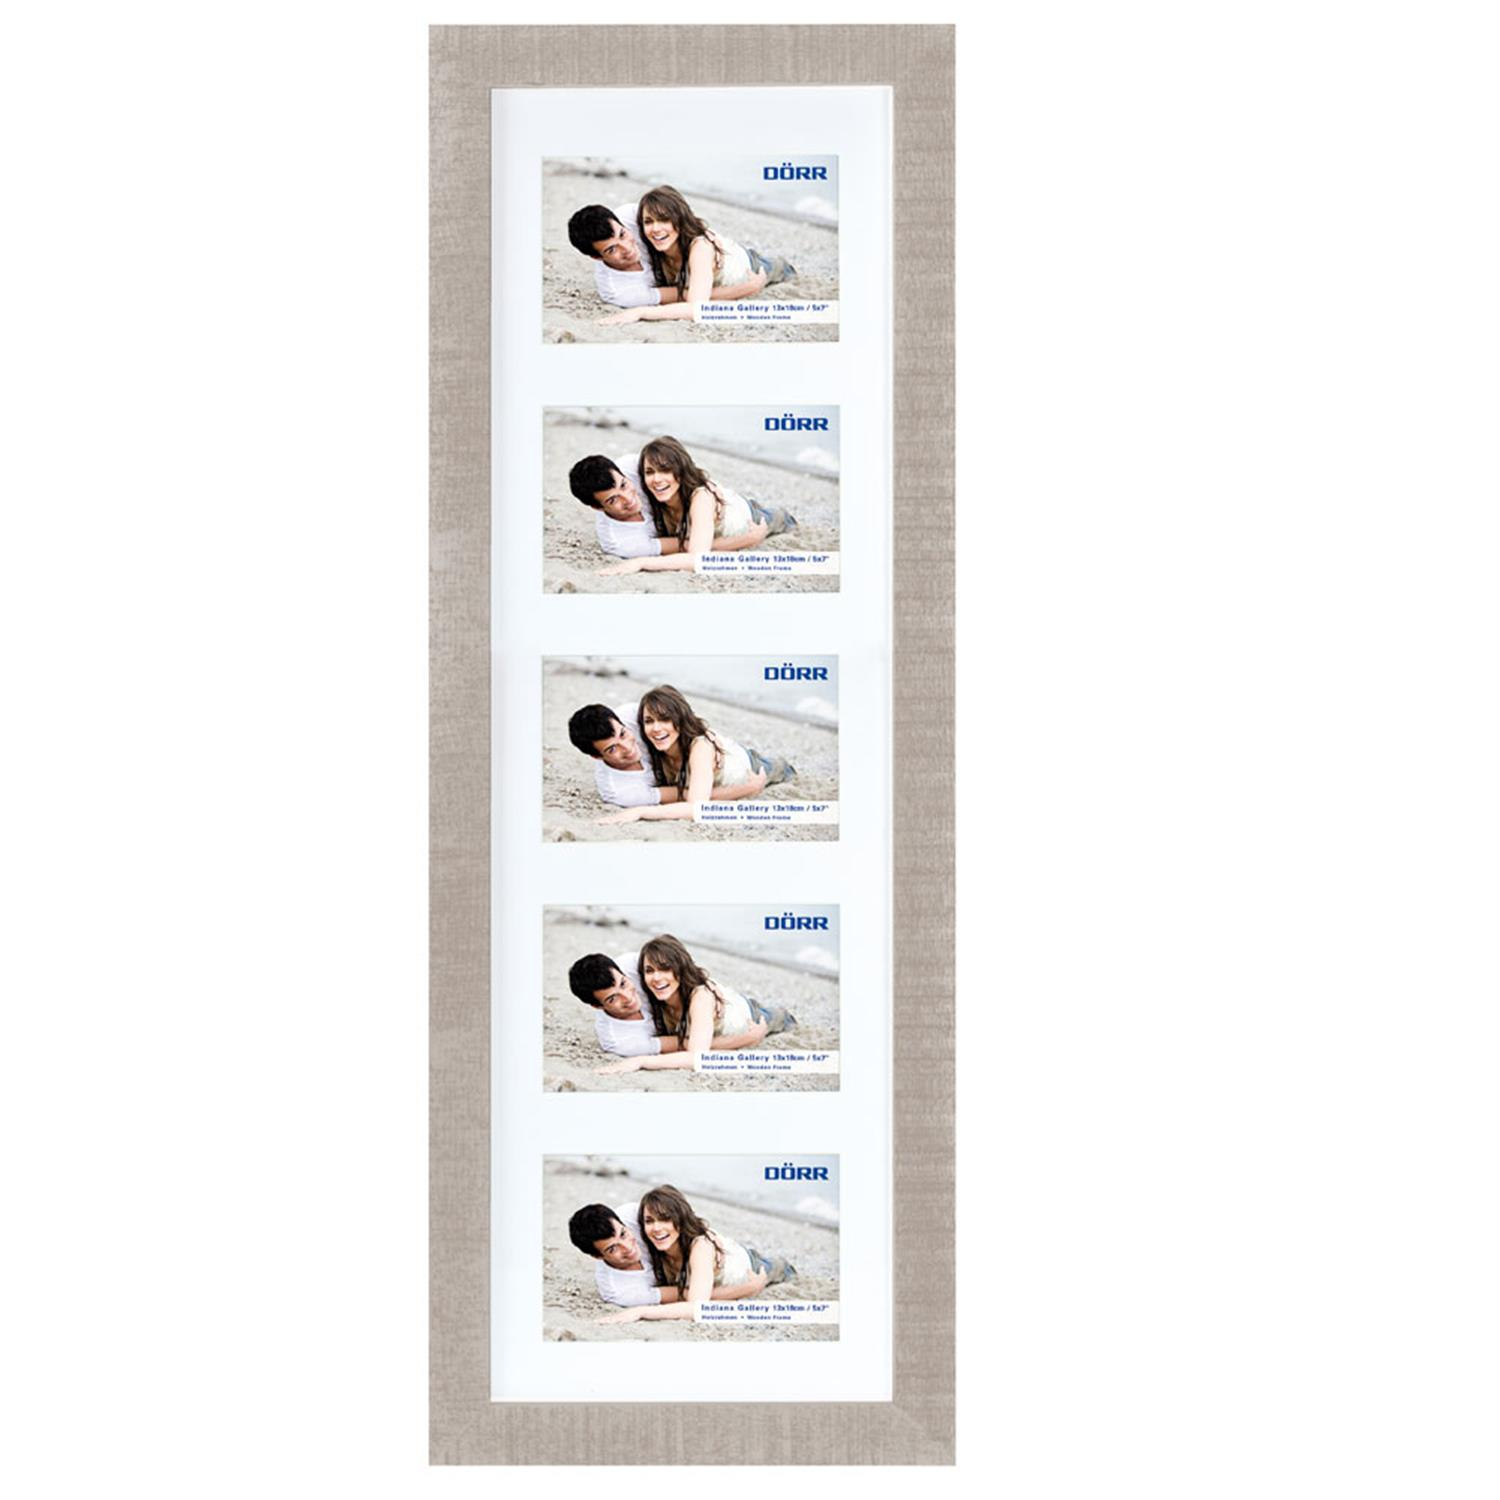 Dorr Indiana Horizontal Beige Gallery Frame for 5 7x5 Photos